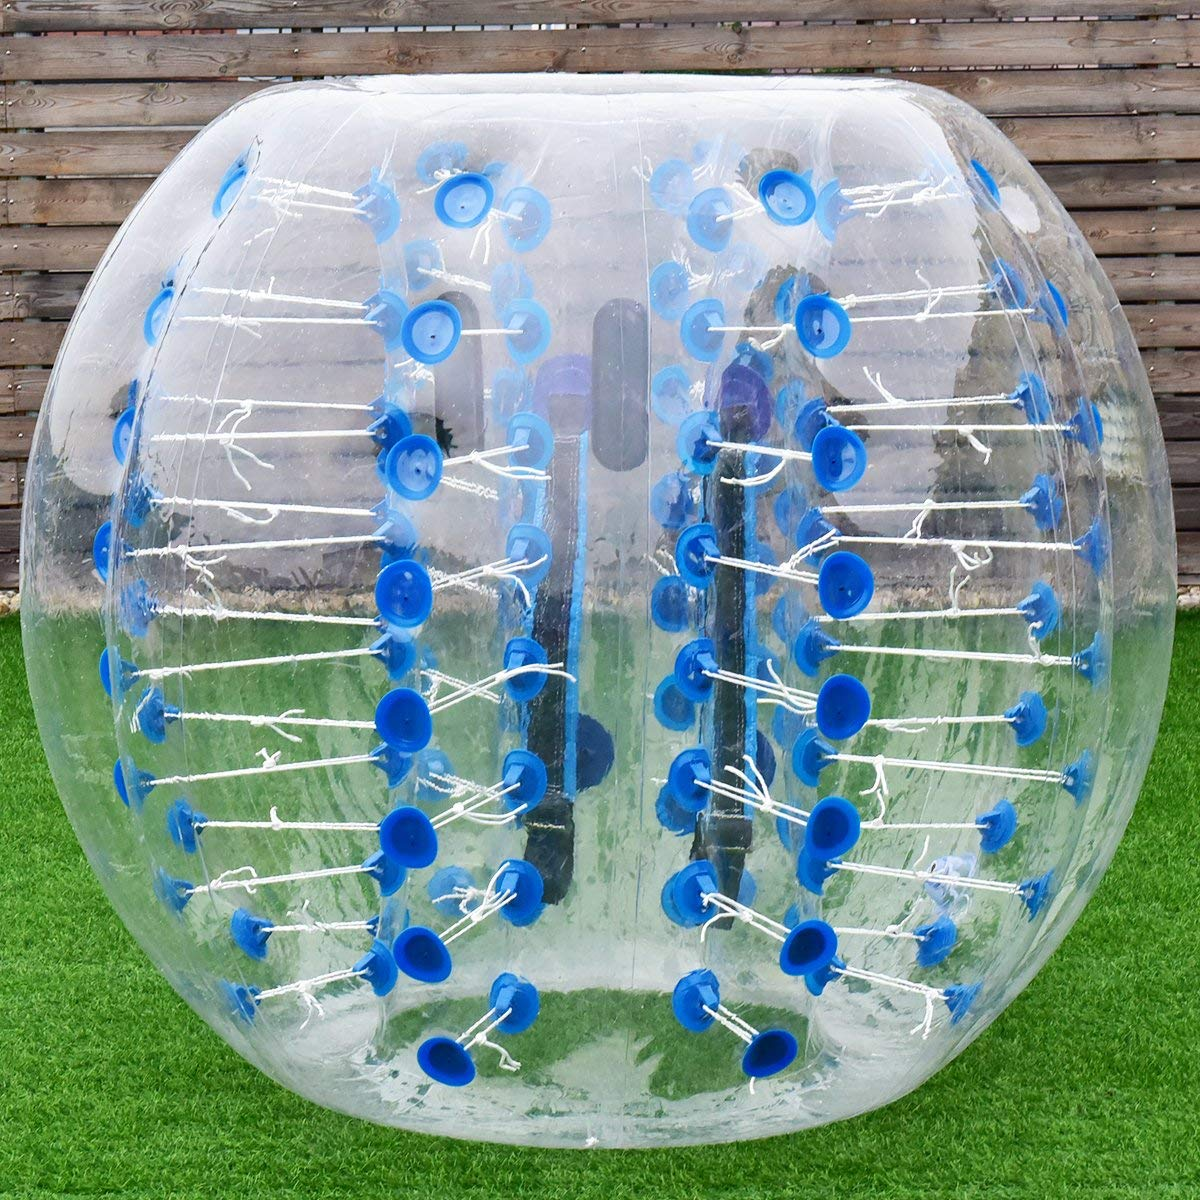 Costzon Bubble Soccer Ball, Dia 5 ft (1.5m) Human Hamster Ball, Thick 8mm PVC Transparent Inflatable Bumper Ball Zorb Ball for Teens and Adults (Sapphire Dot) by Costzon